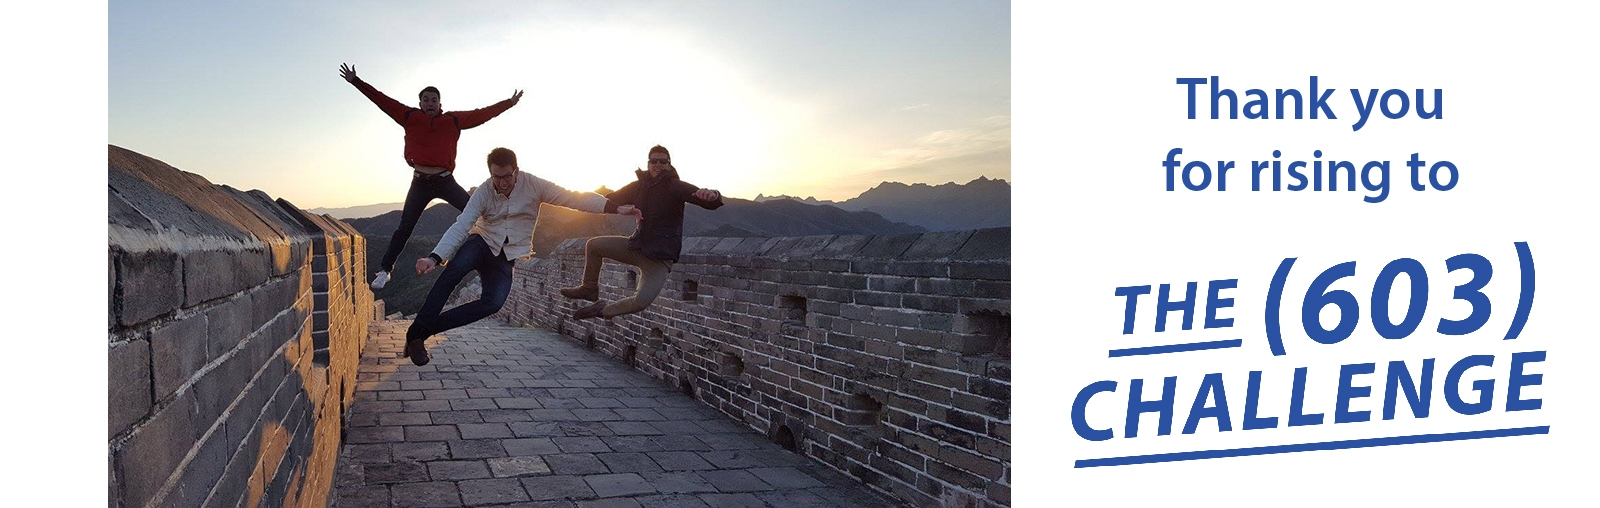 3 guys on Great Wall of China with thank you for rising to 603 Challenge text